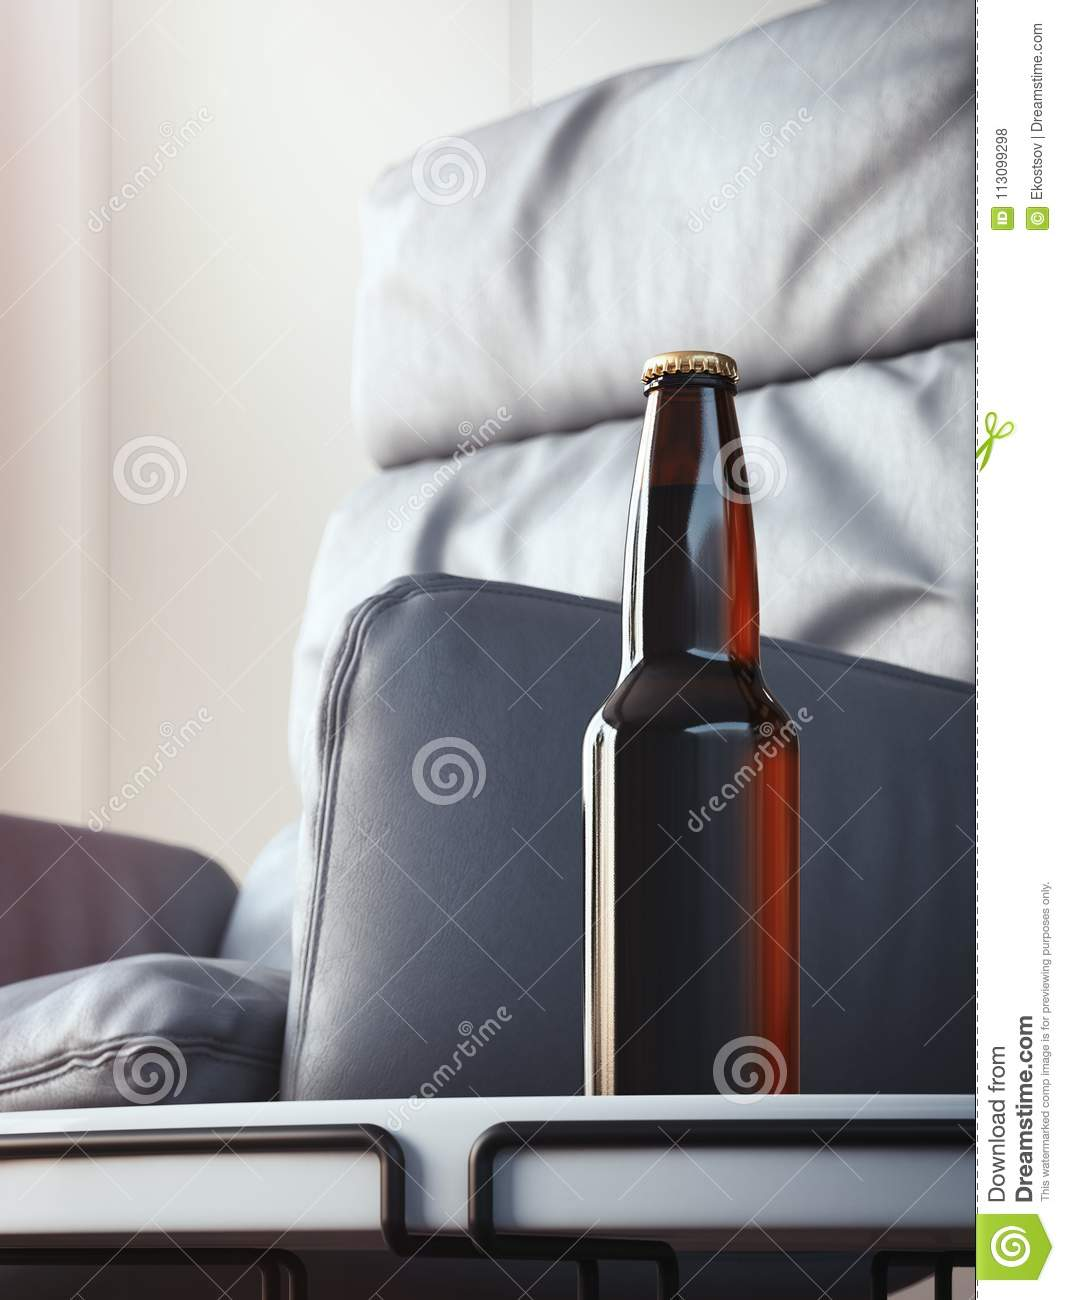 Admirable Brown Beer Bottle On Coffee Table In Cozy Interior 3D Alphanode Cool Chair Designs And Ideas Alphanodeonline